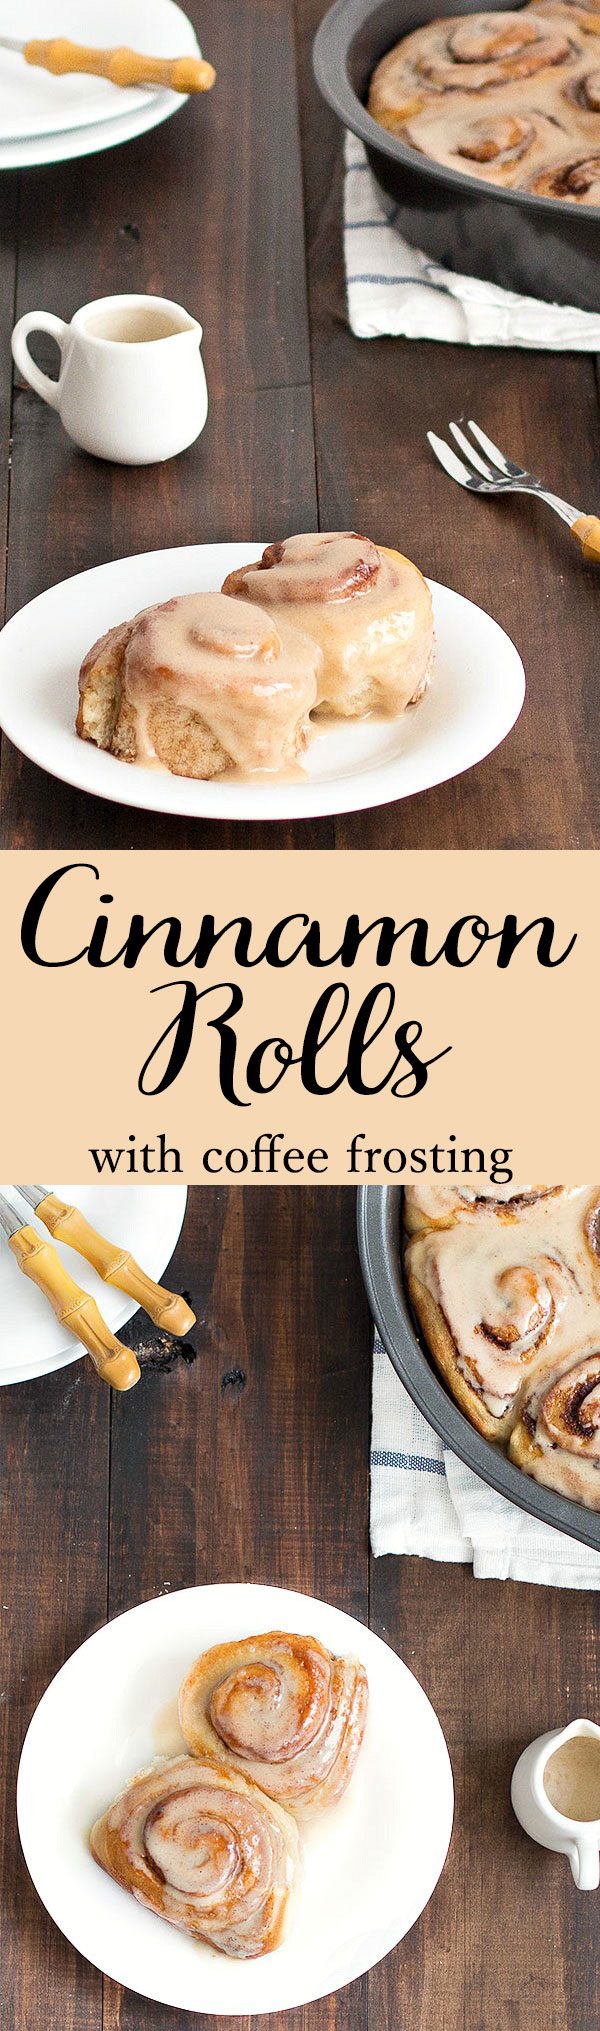 Pioneer Woman's no-knead cinnamon rolls: soft, fluffy and exactly what you look for in a cinnamon roll. You can make the dough 2 days ahead